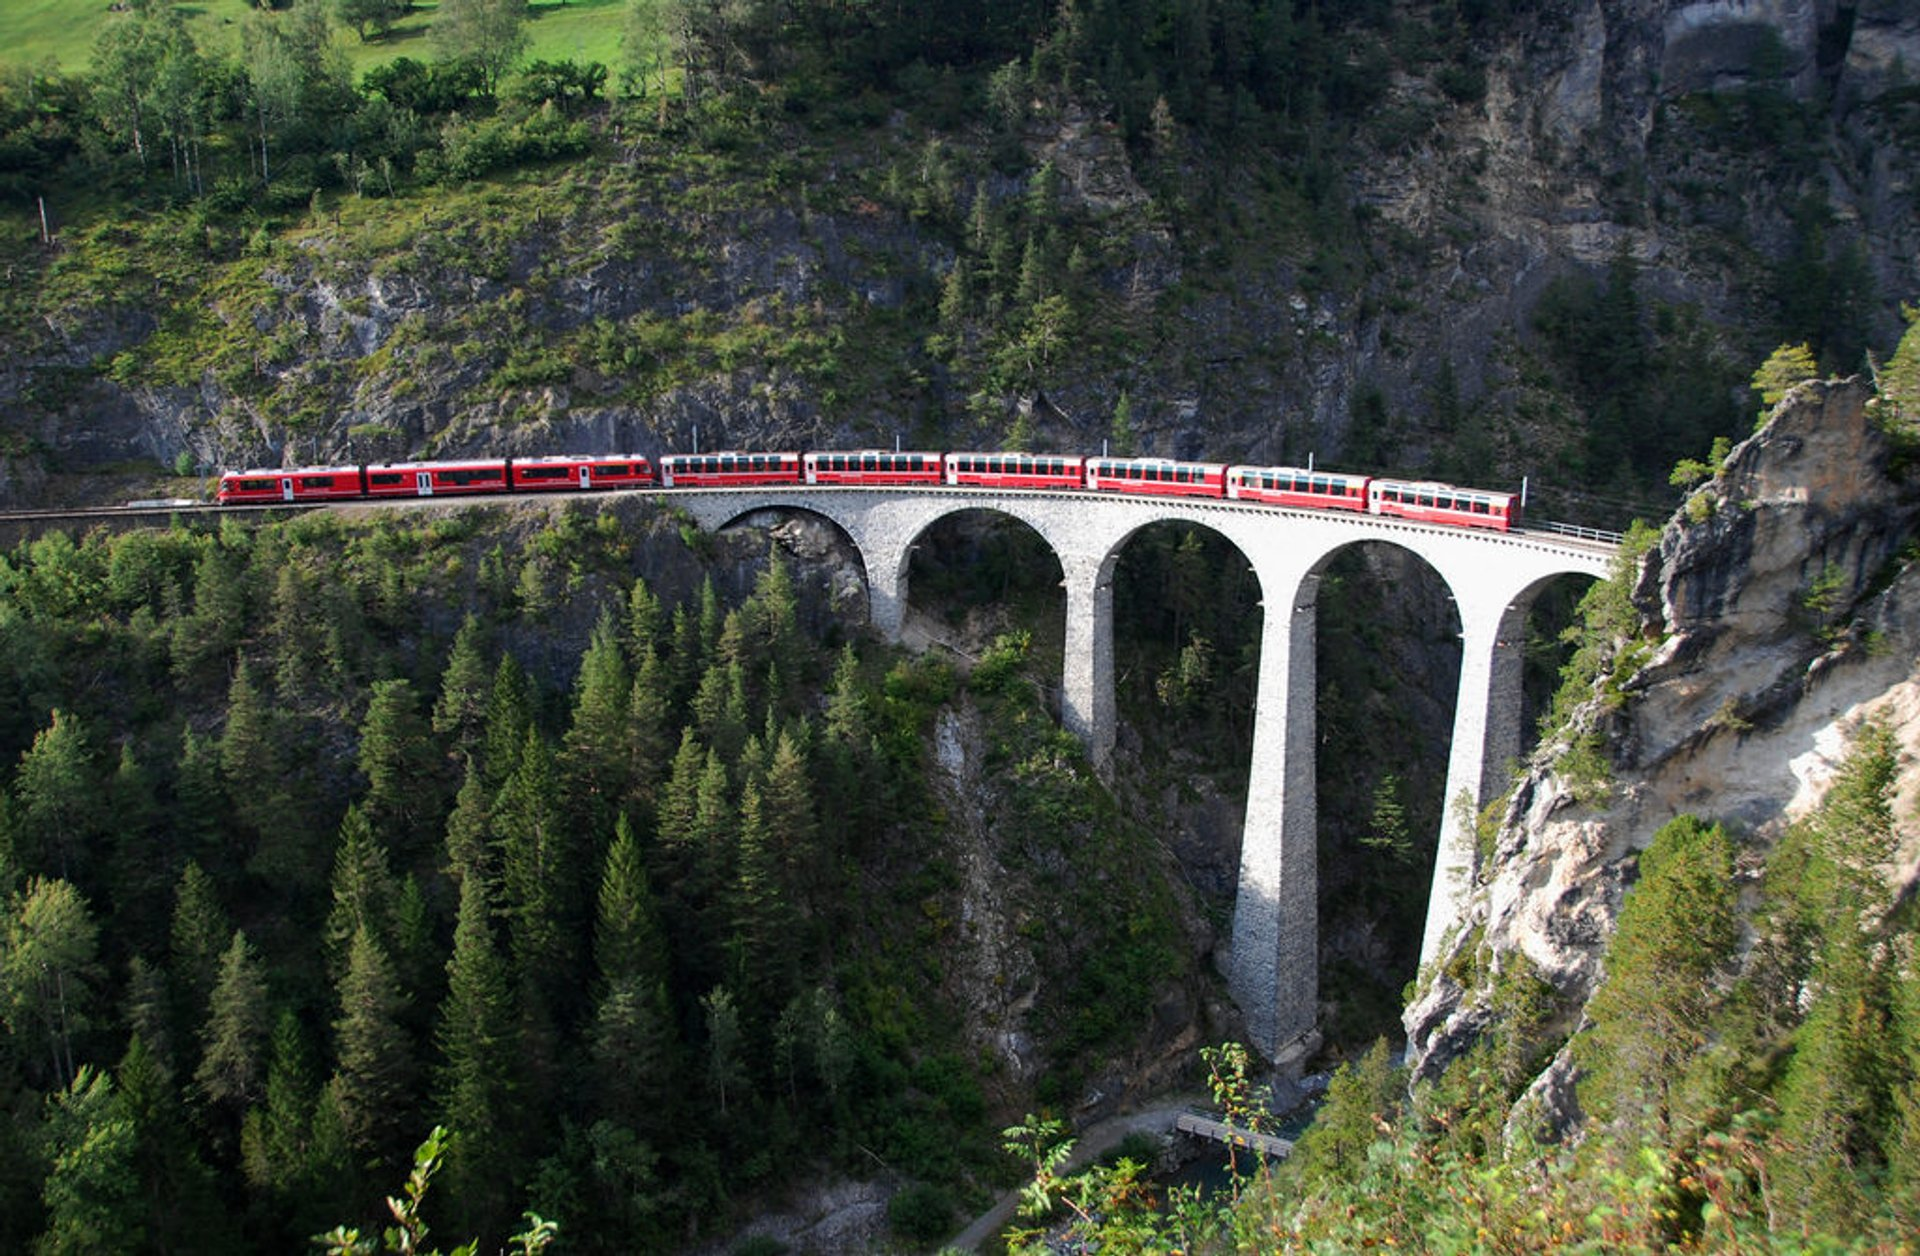 The Landwasser Viaduct